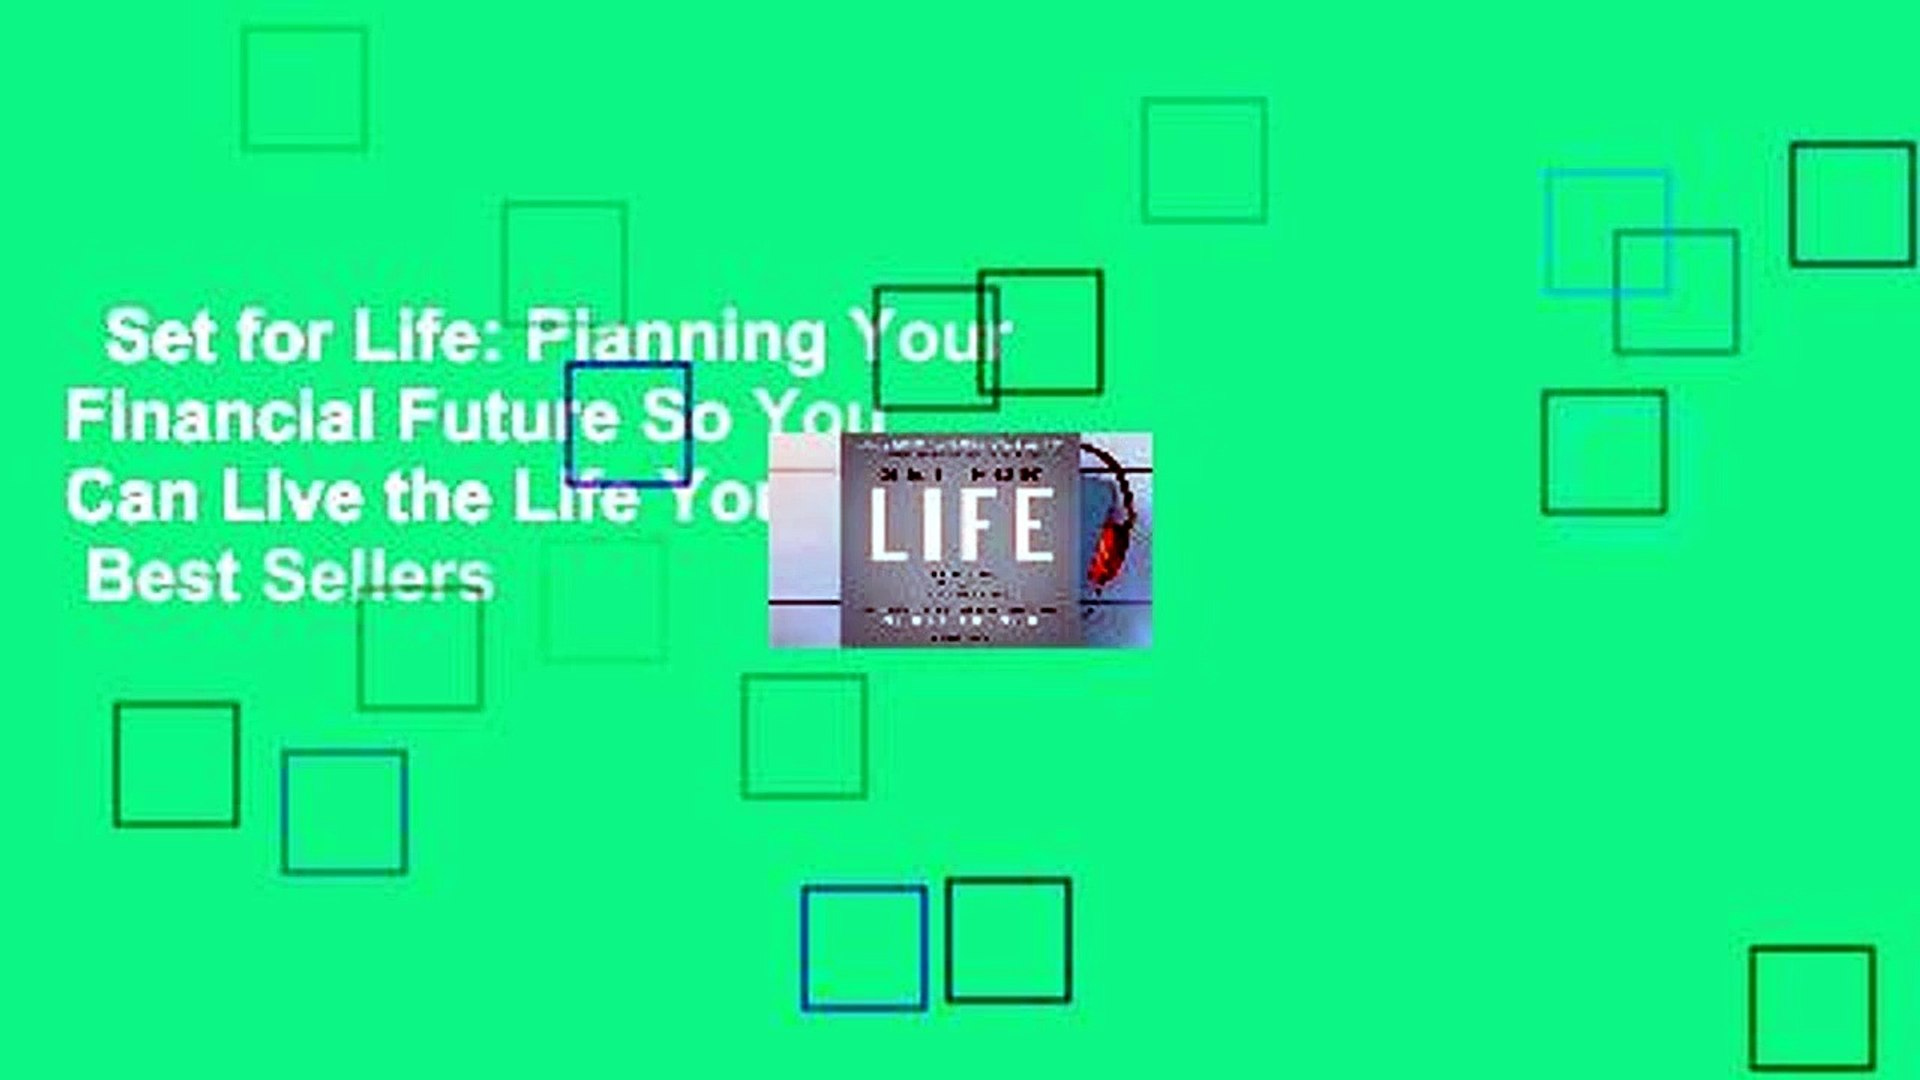 Set for Life: Planning Your Financial Future So You Can Live the Life You Choose.  Best Sellers